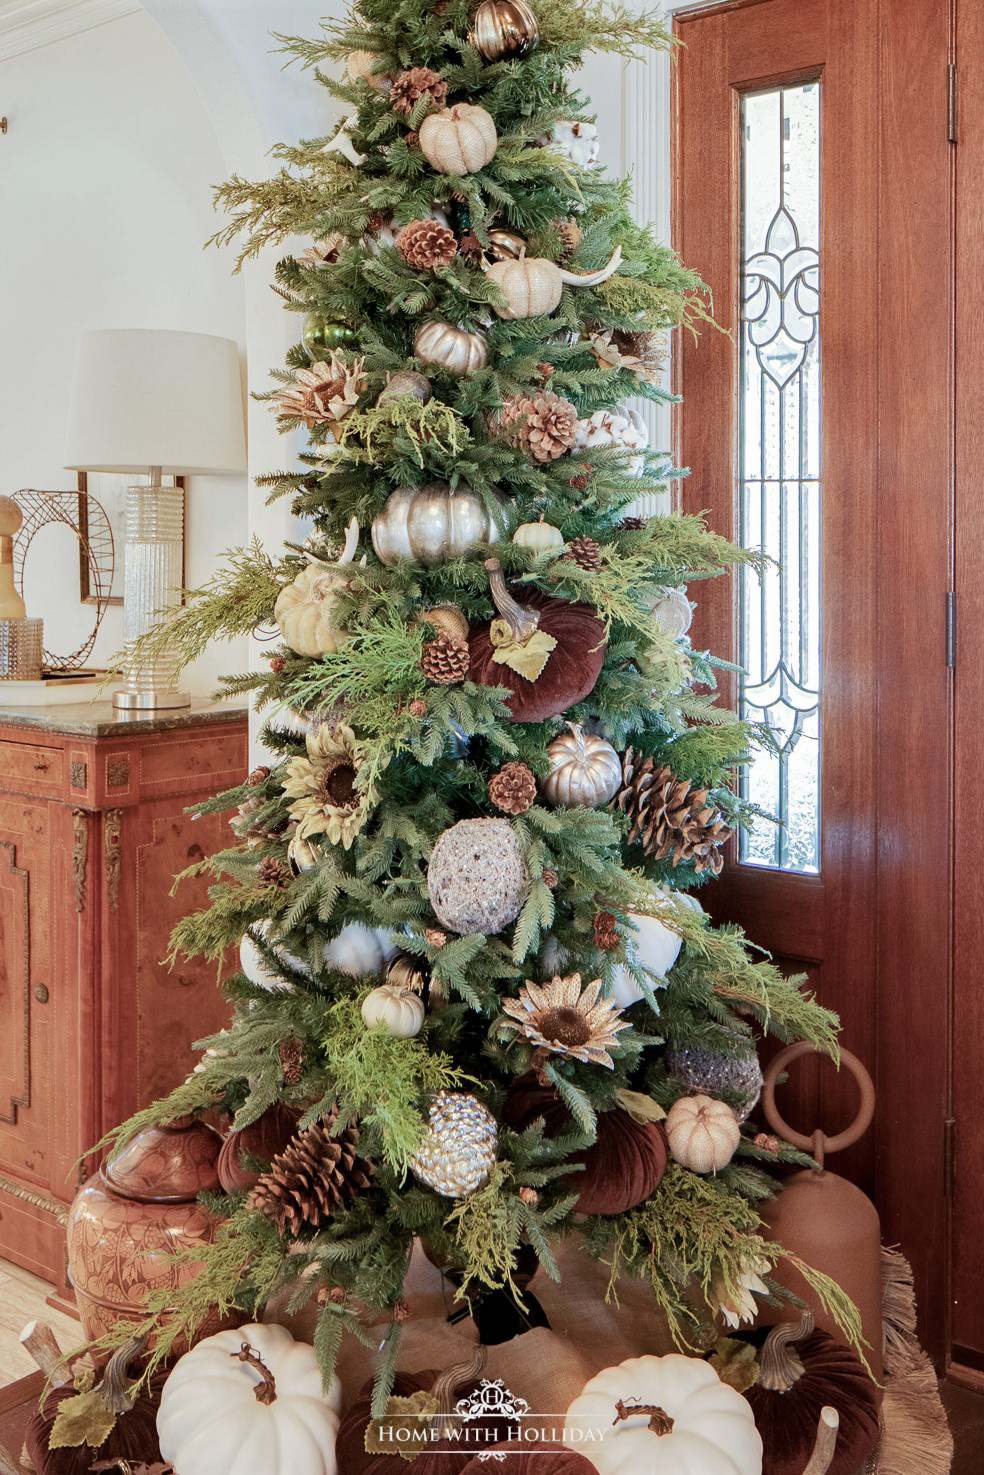 My Simple Thanksgiving Tree with Pumpkins and Pinecones - Home with Holliday